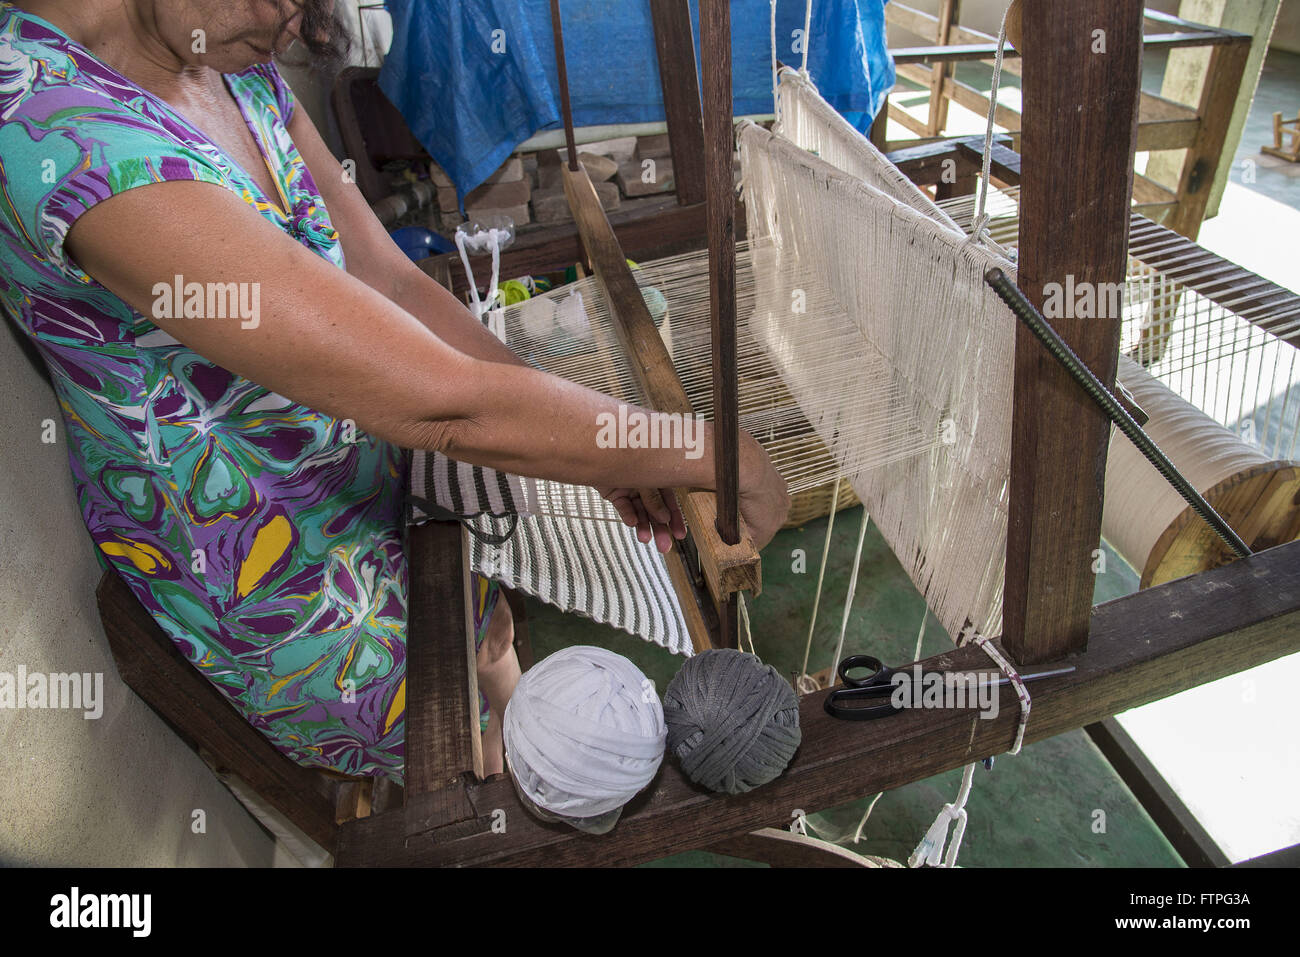 Working in handloom to production of parts for textile crafts - Stock Image